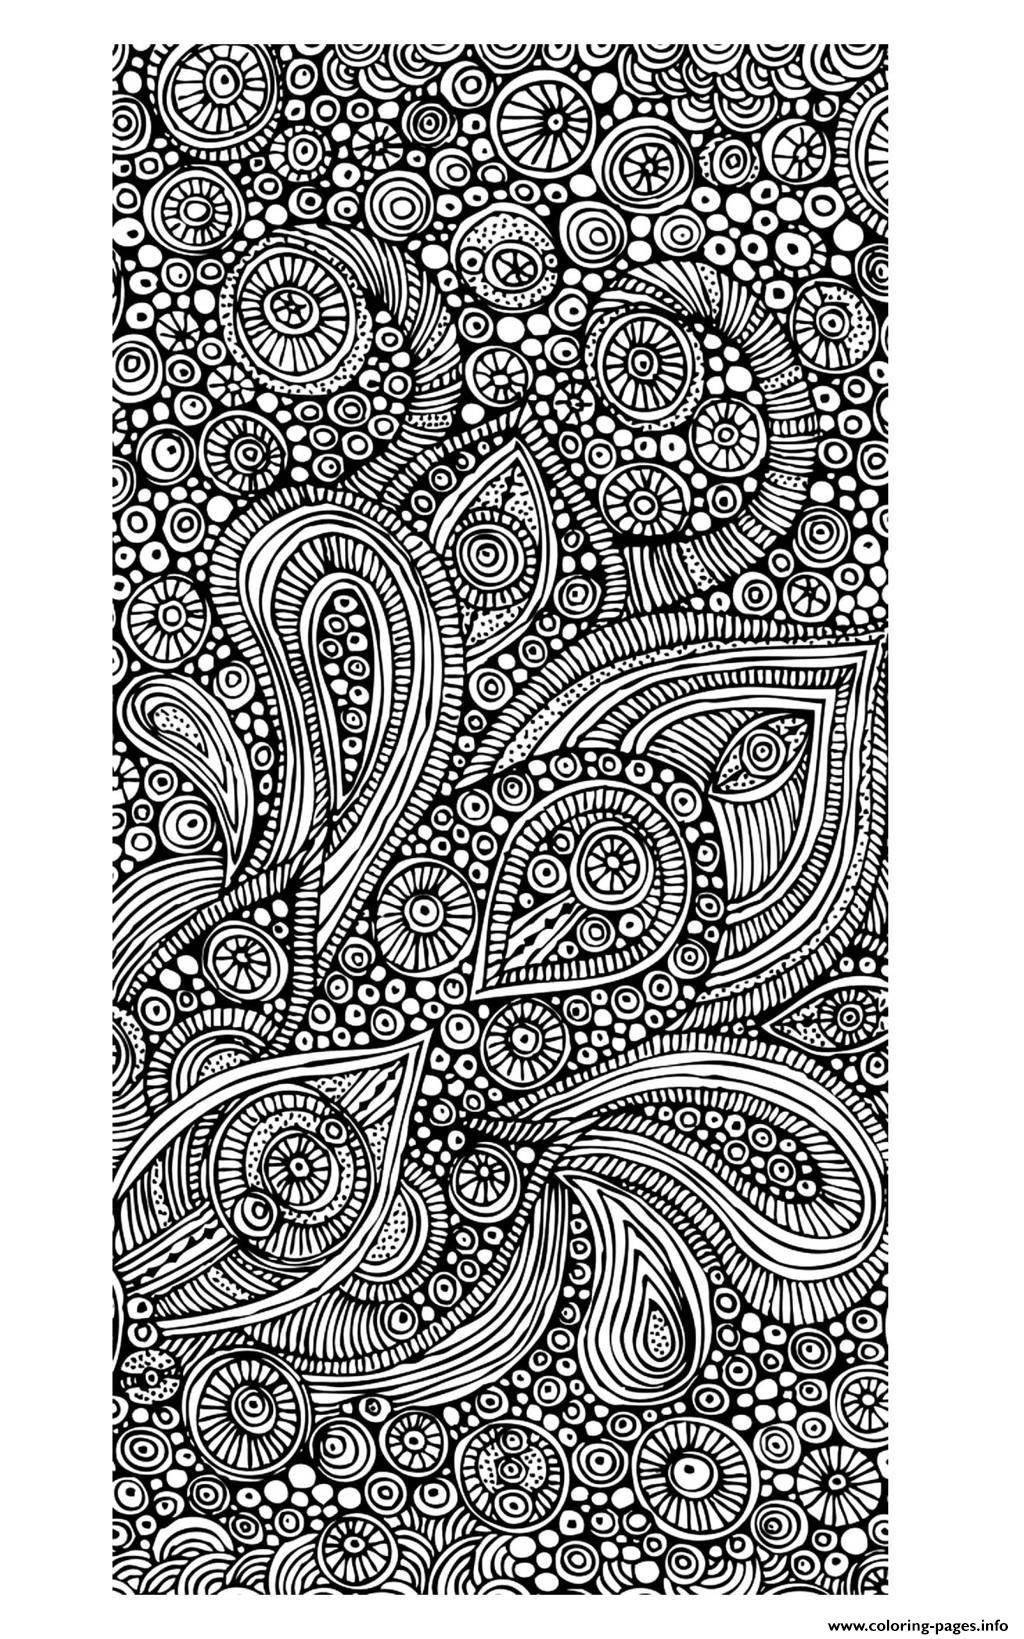 free zen coloring pages abstract zen anti stress adult coloring pages page 2 zen free coloring pages